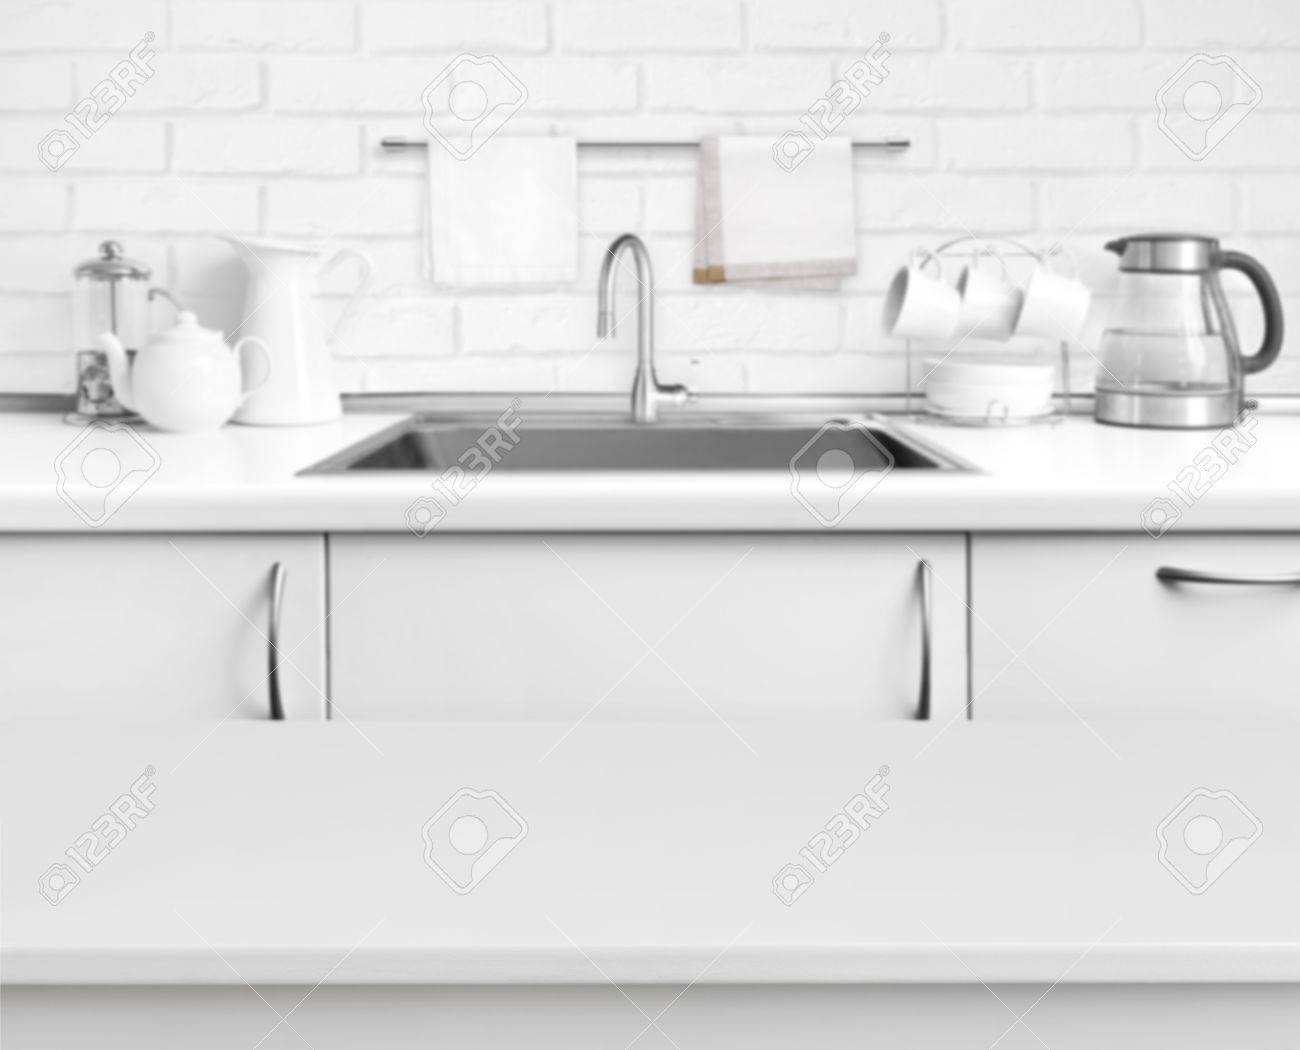 White Laminated Table On Blurred Rustic Kitchen Sink Interior ...